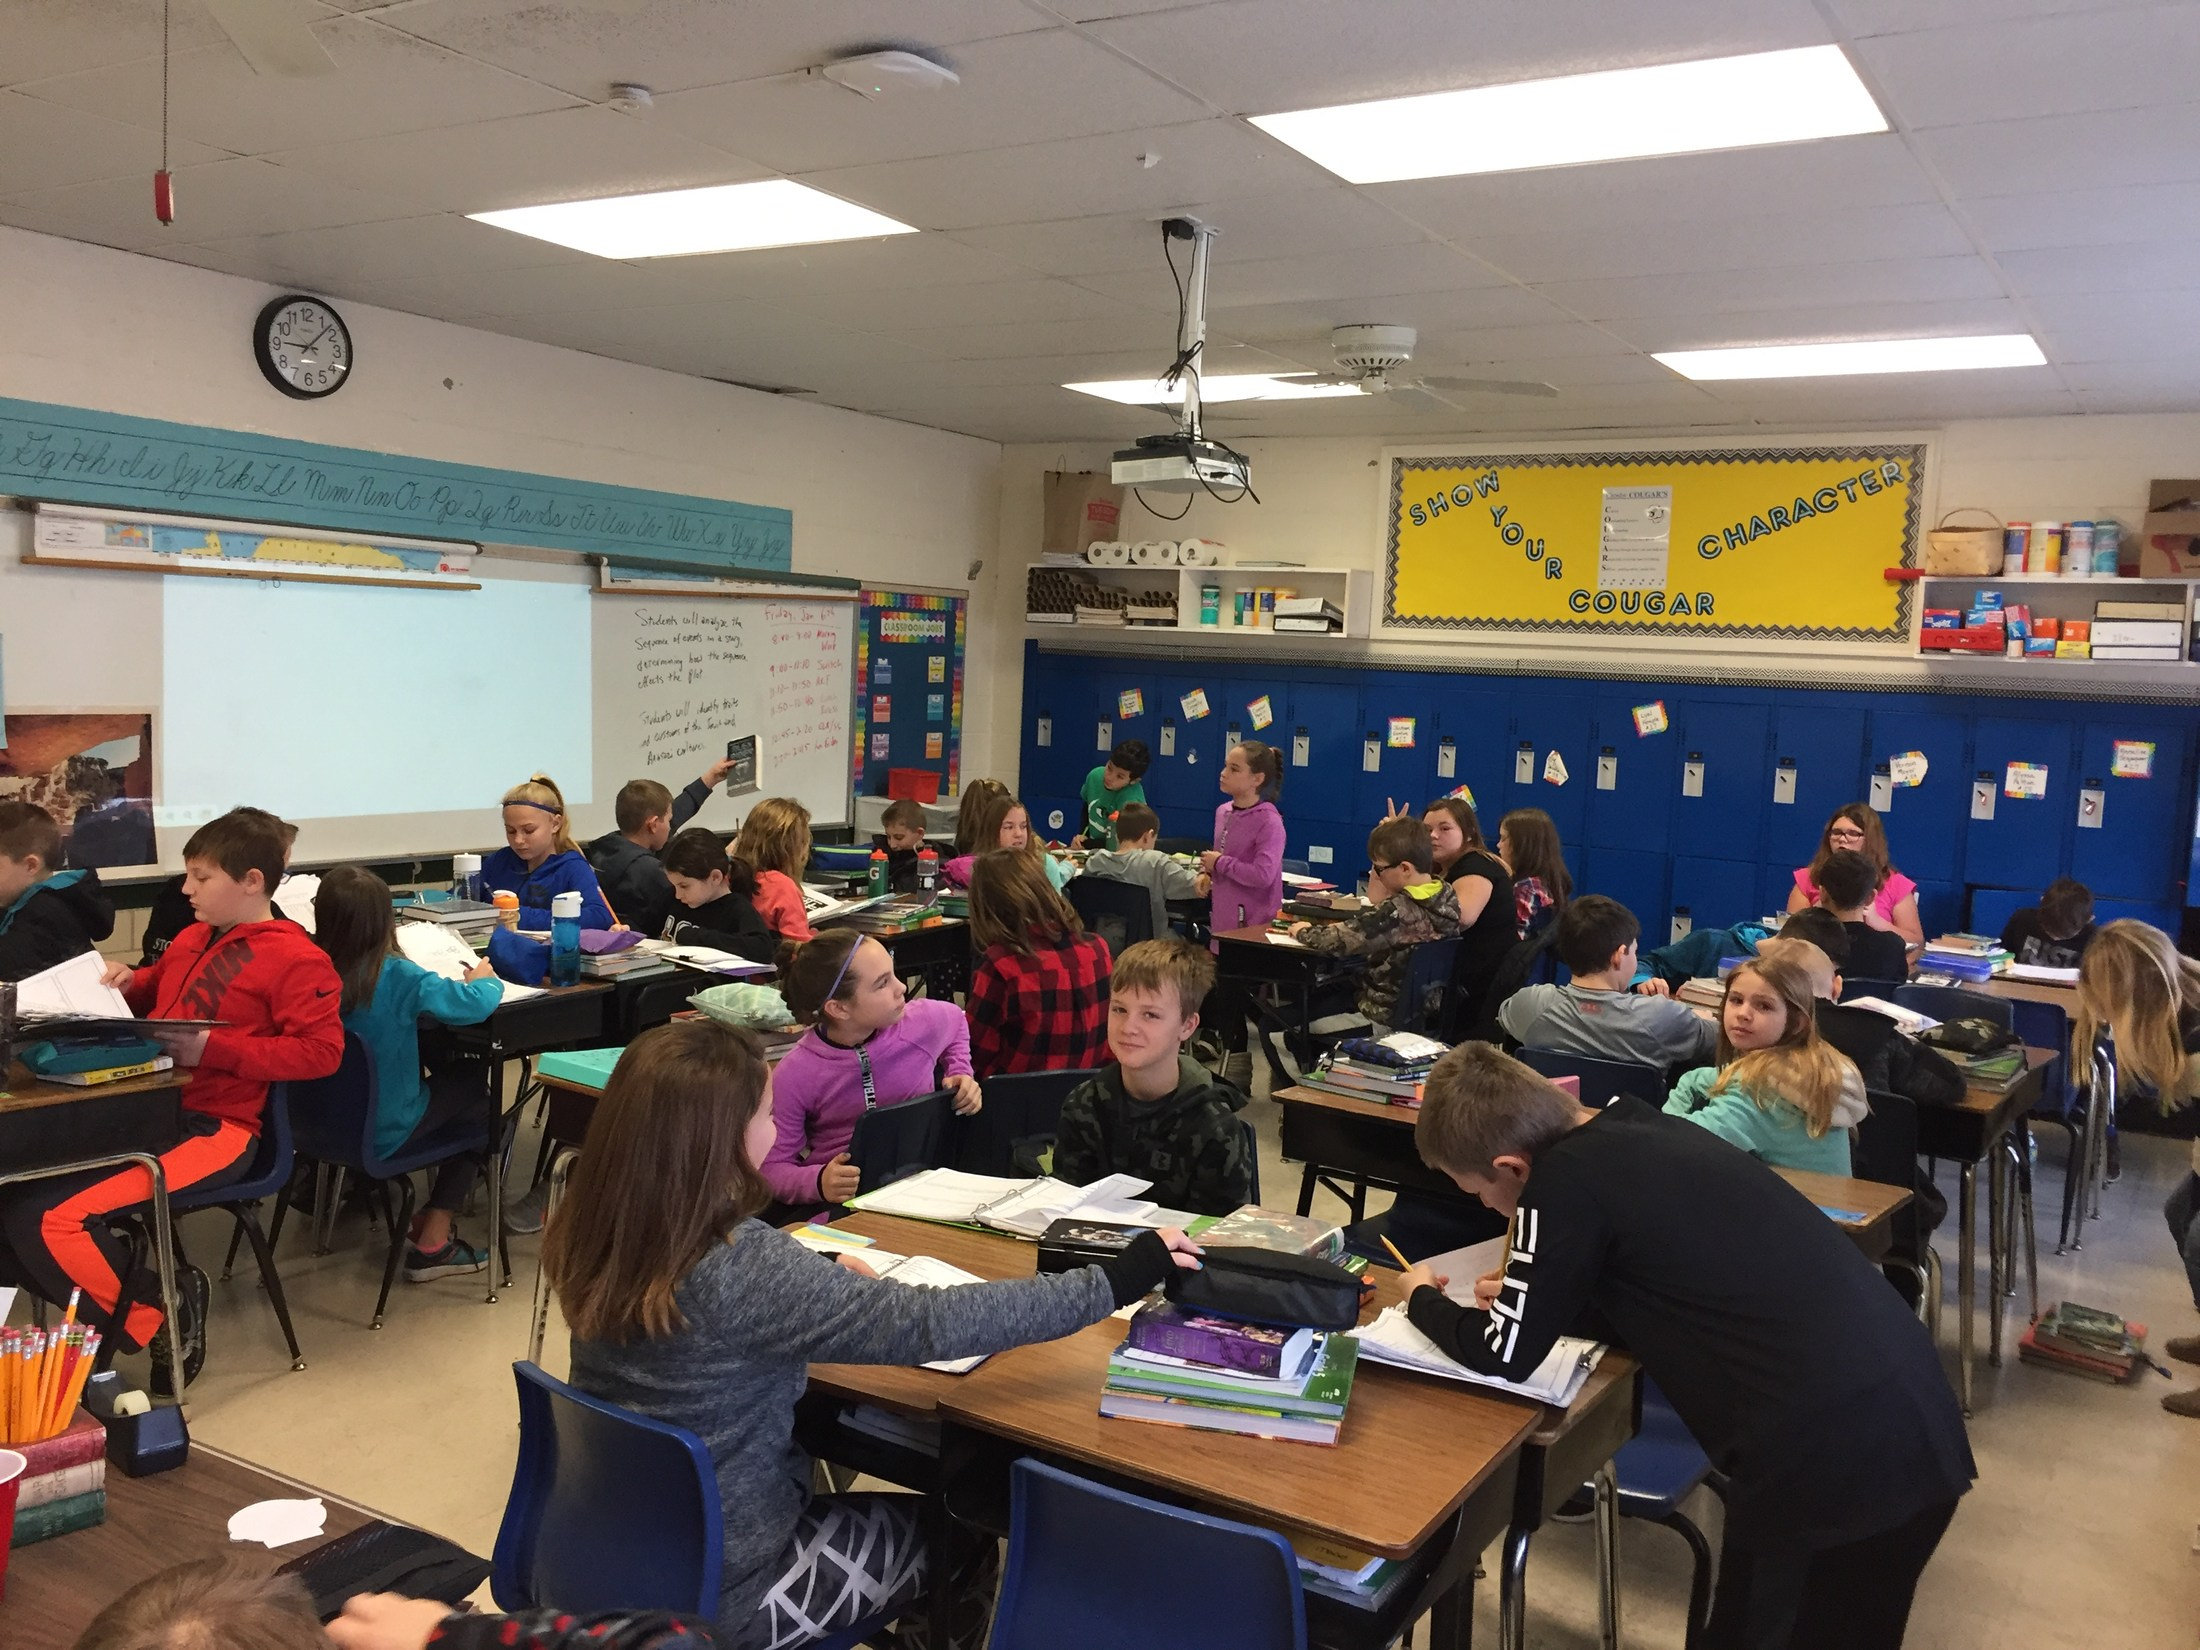 Crosby Elementary has 33 fifth graders in one classroom